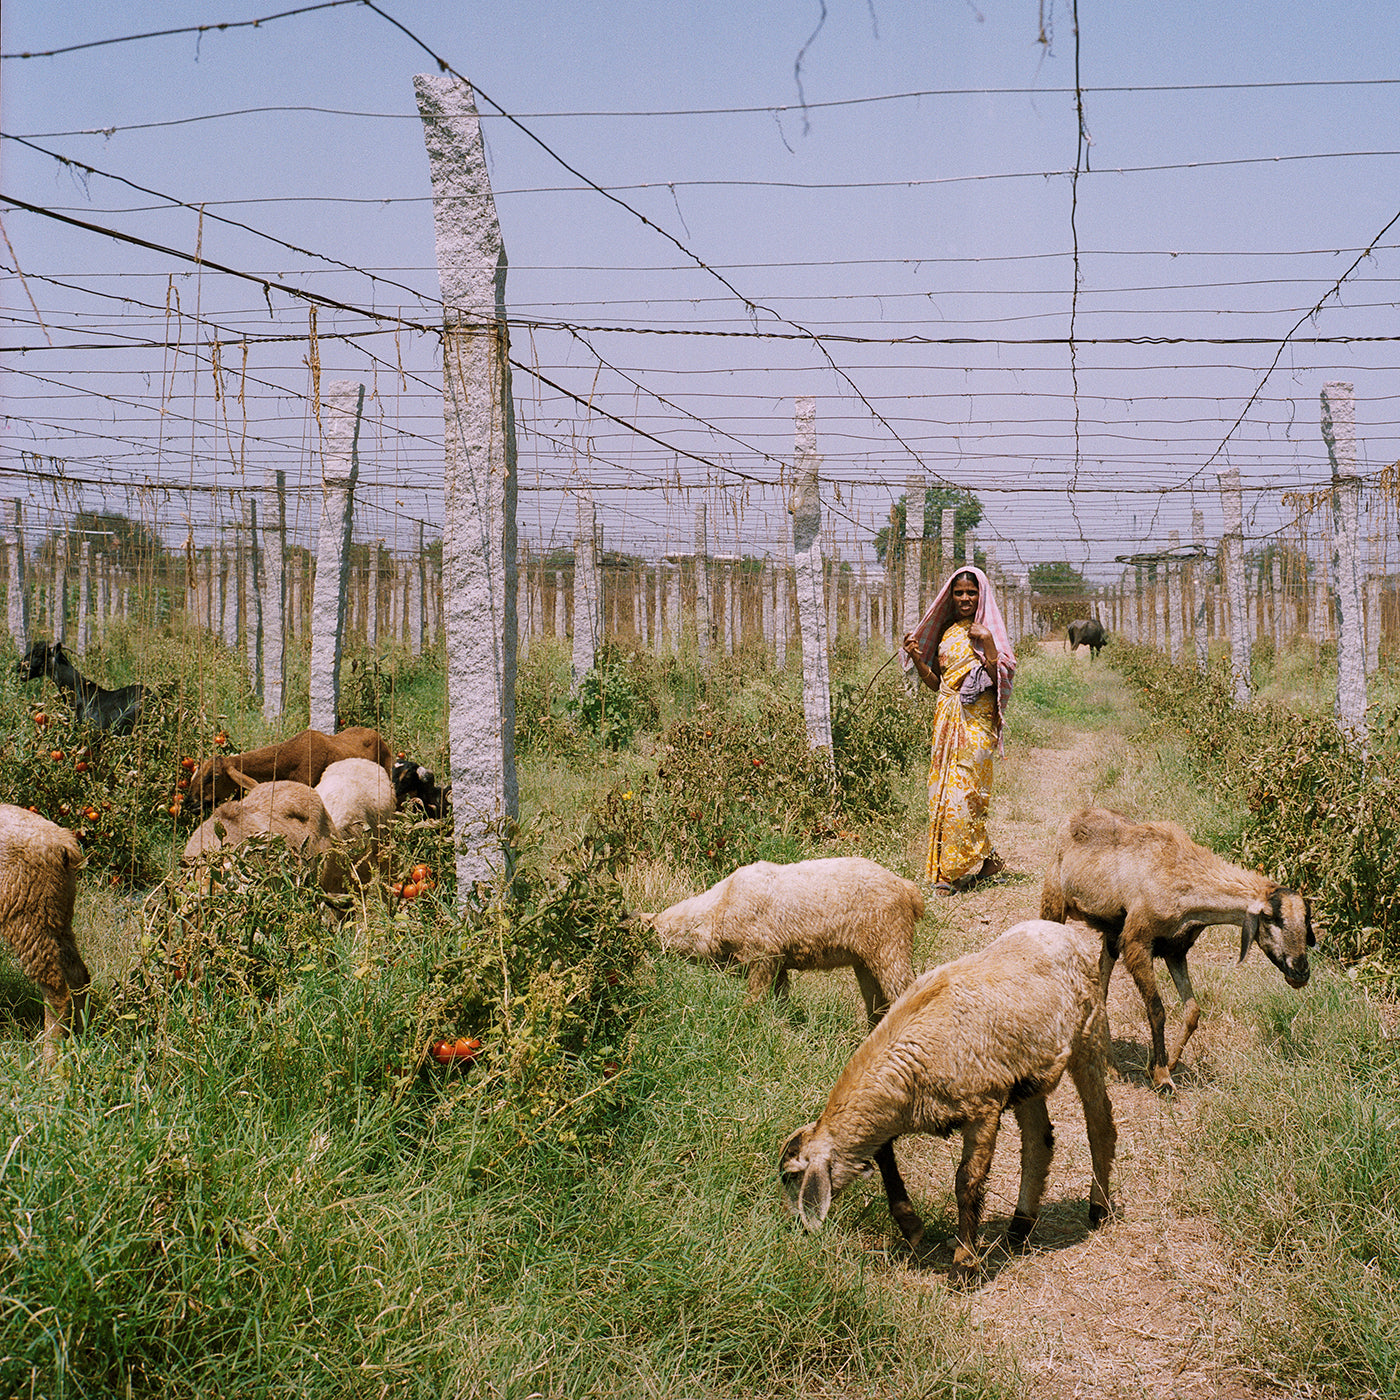 India's Greenhouse Revolution. Photo: Sara Hylton